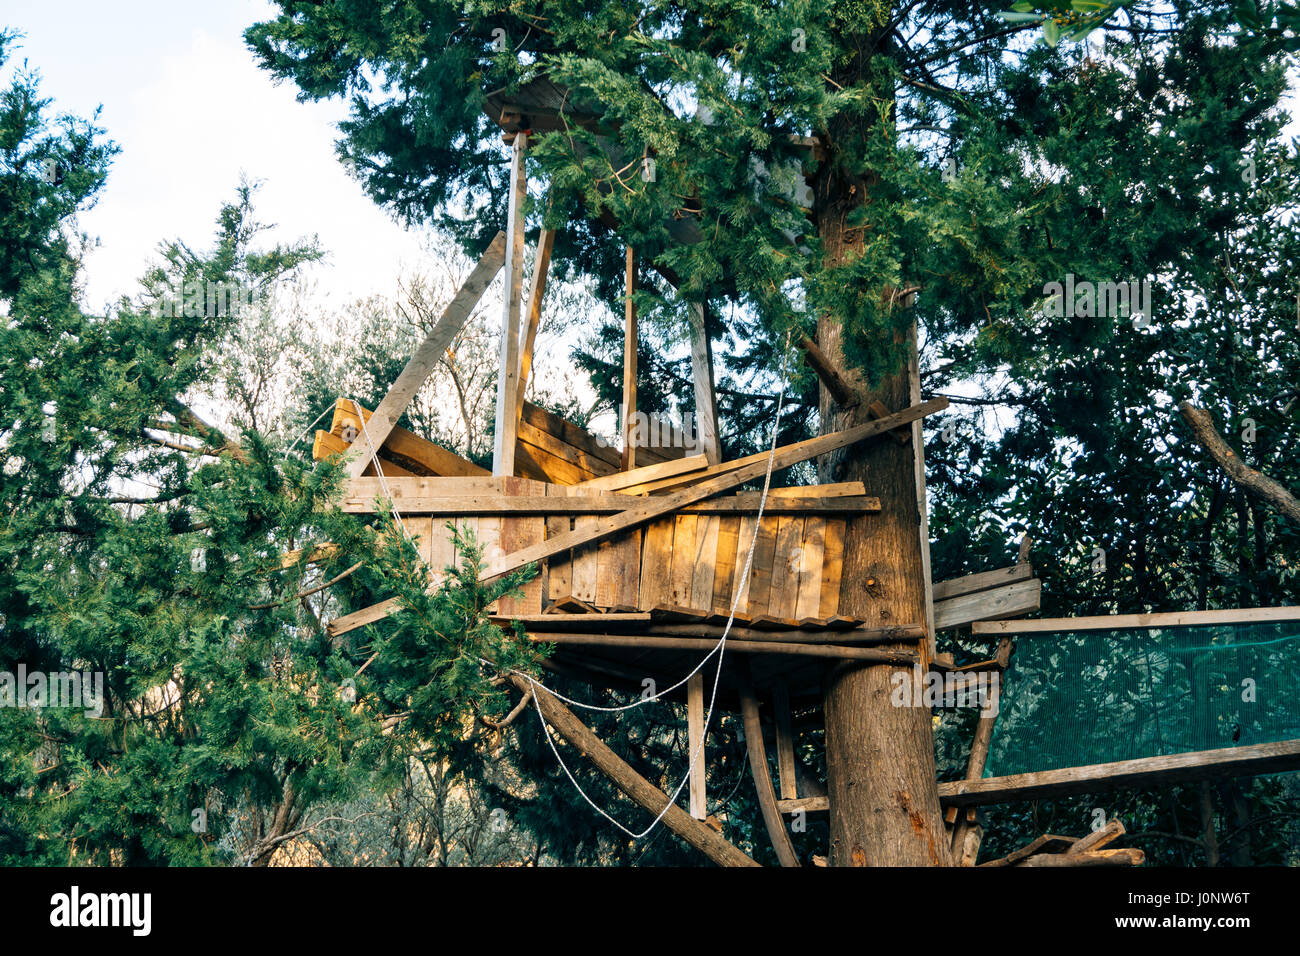 Treehouse with his own hands 77